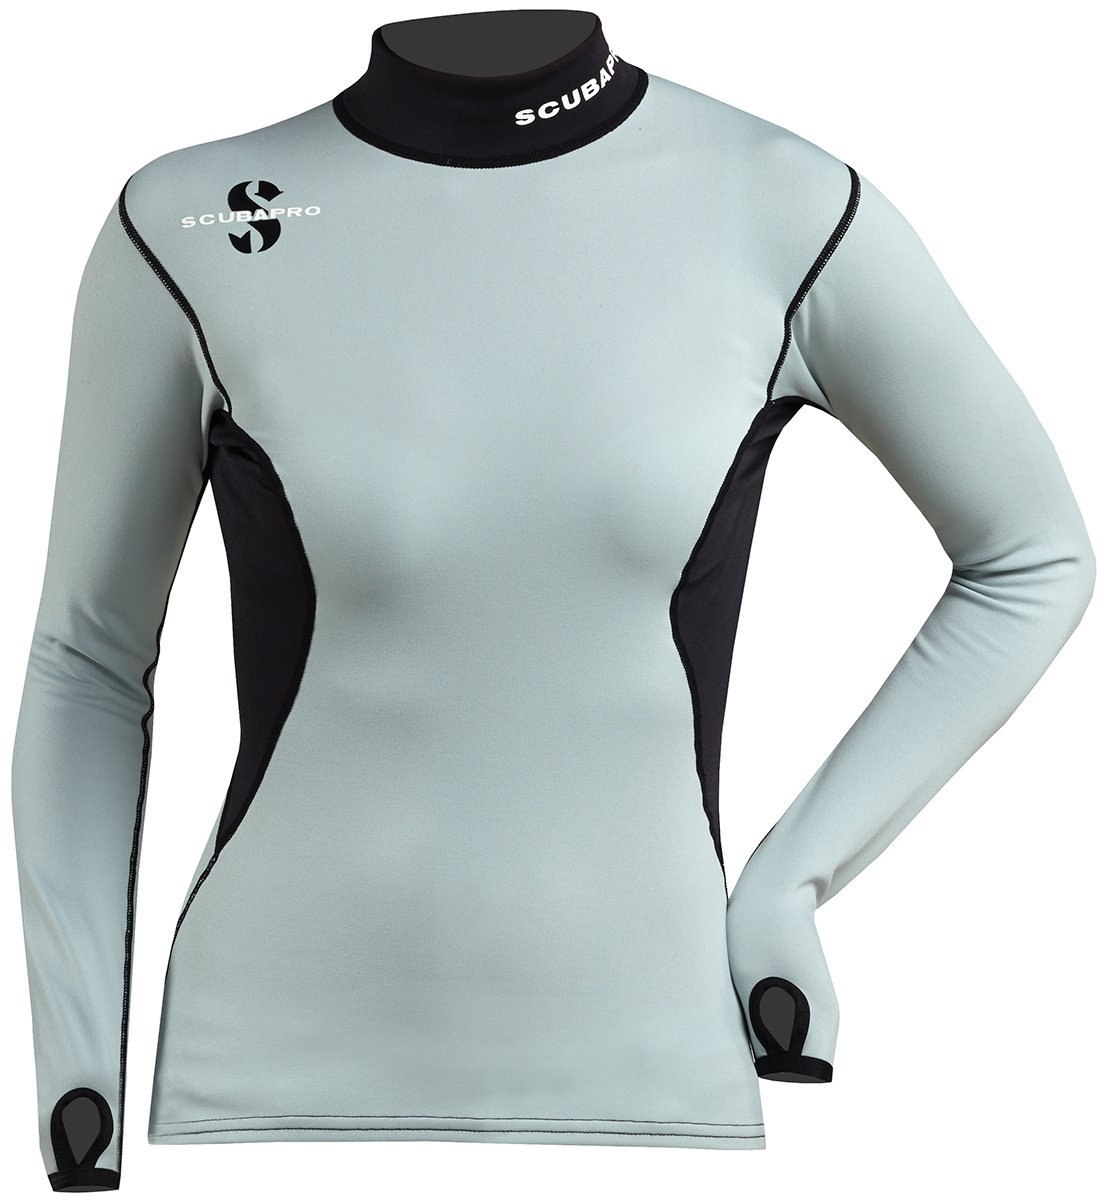 Scubapro Fleece Rash Guard LS Women